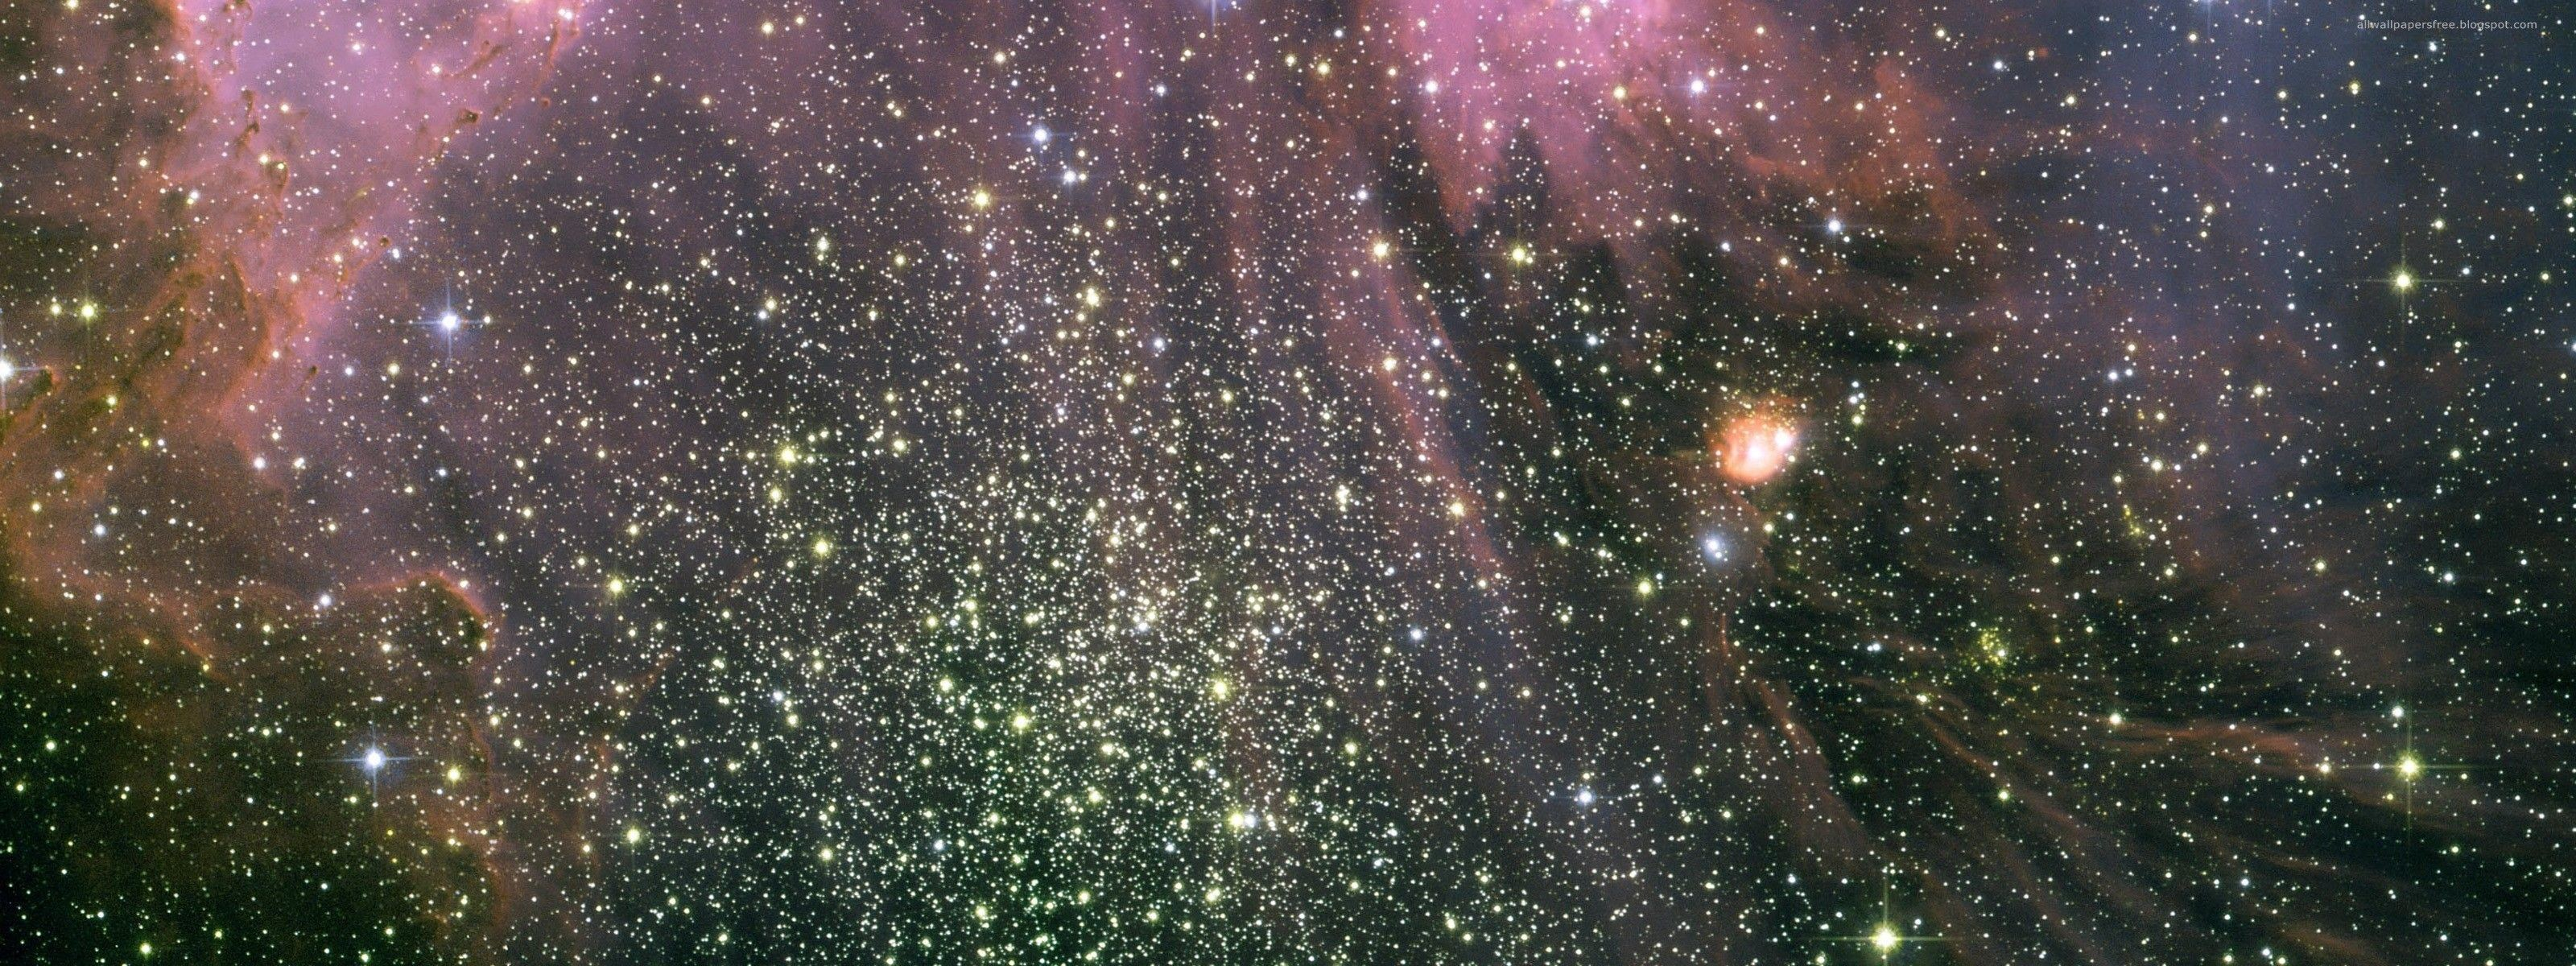 Hubble Wallpaper 1440X900 (page 3) – Pics about space